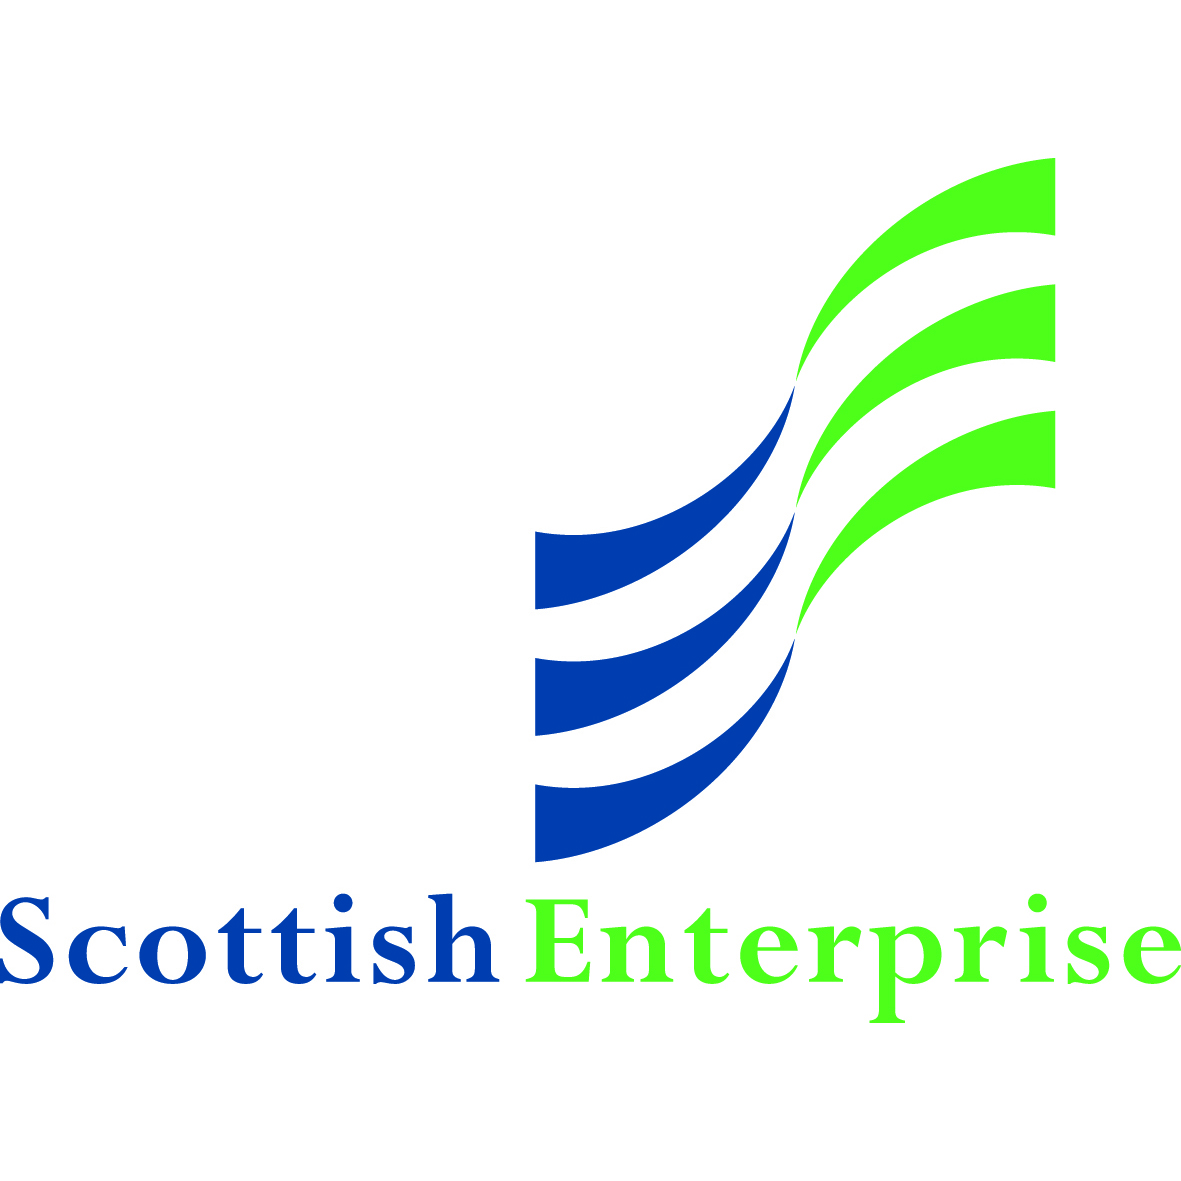 Scottish Enterprise.jpg